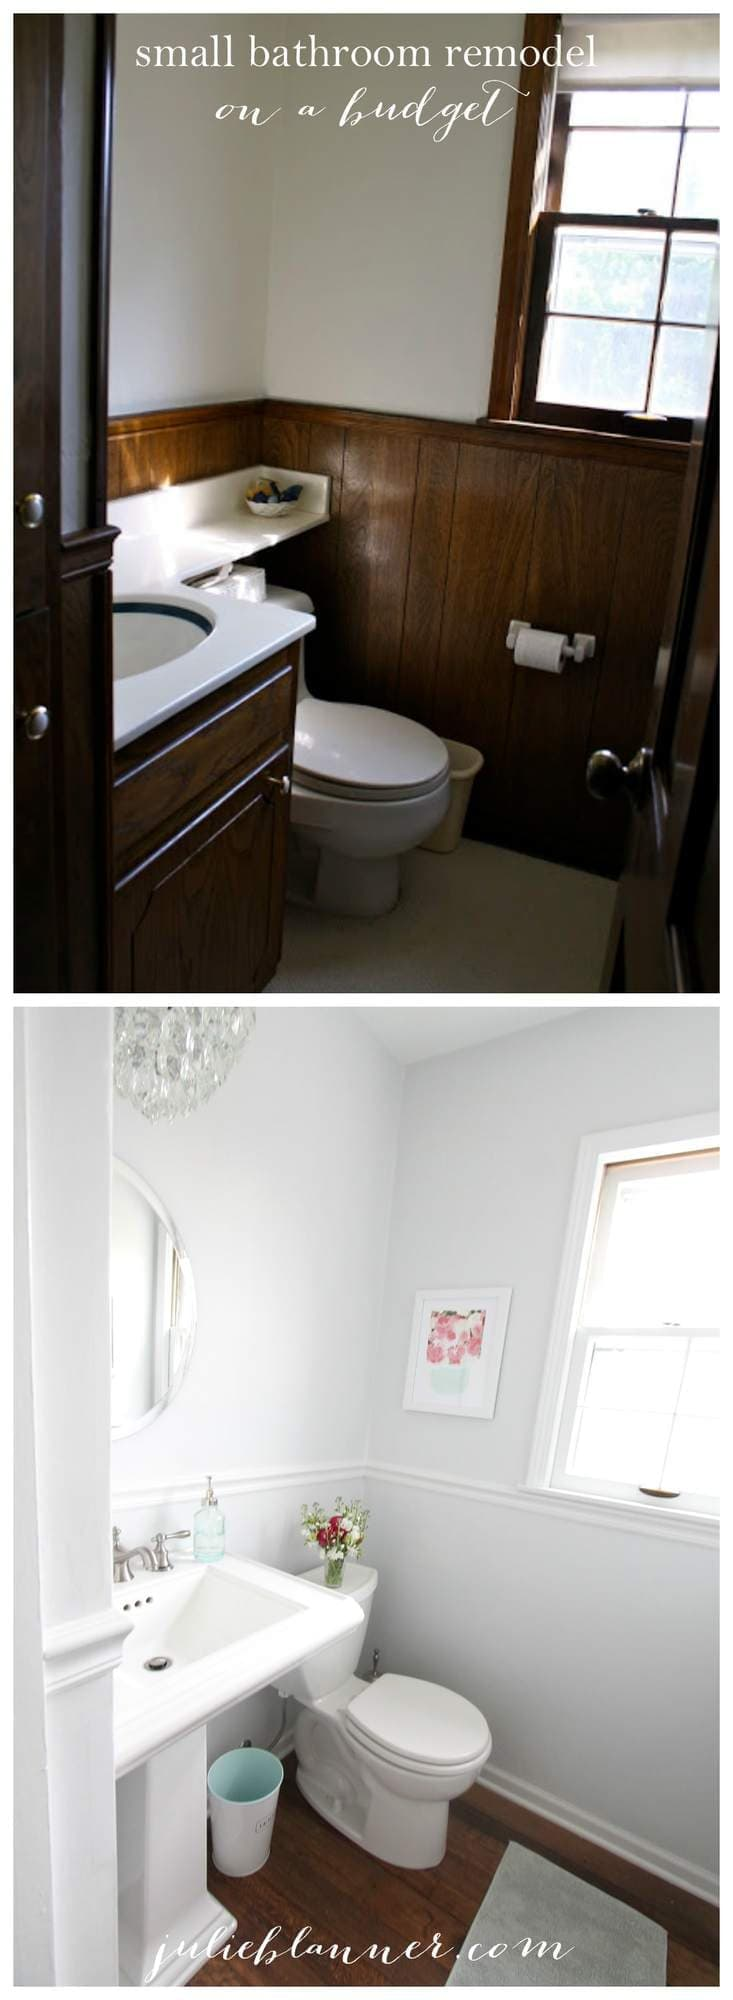 Small bathroom remodel before & after - filled to the brim with space saving ideas on a budget!